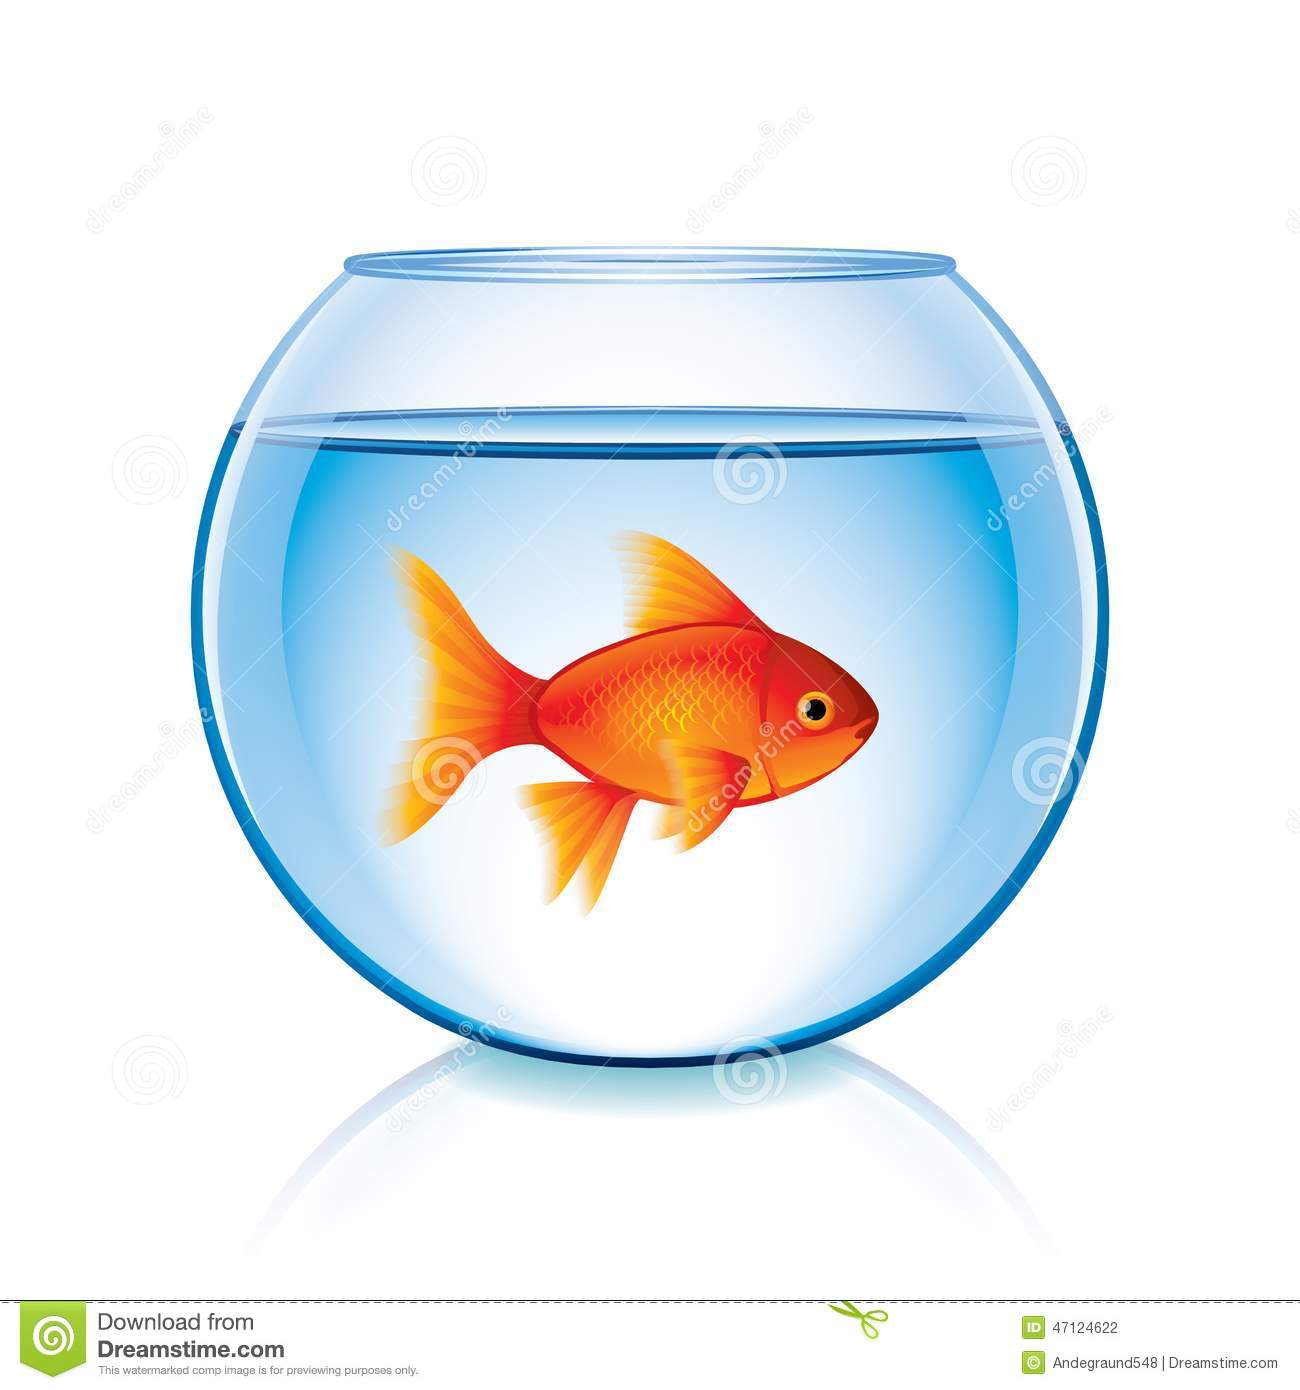 Goldfish in a bowl - photo#24